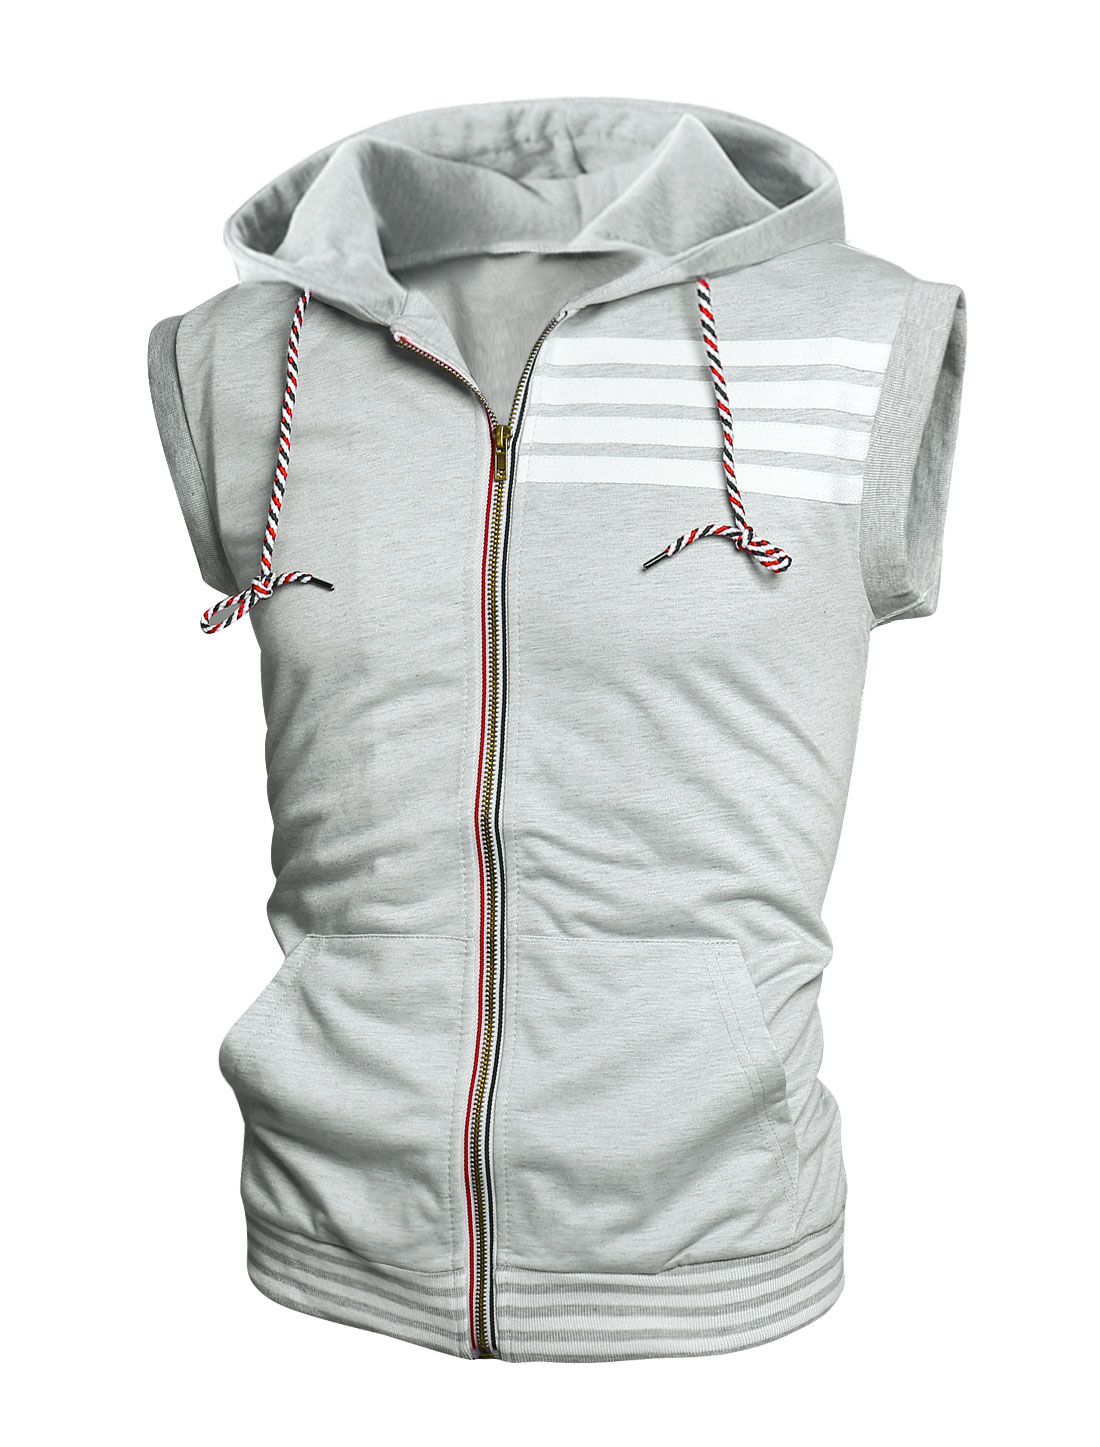 Men Hooded Sleeveless Two Front Pockets Casual Vest Light Gray M